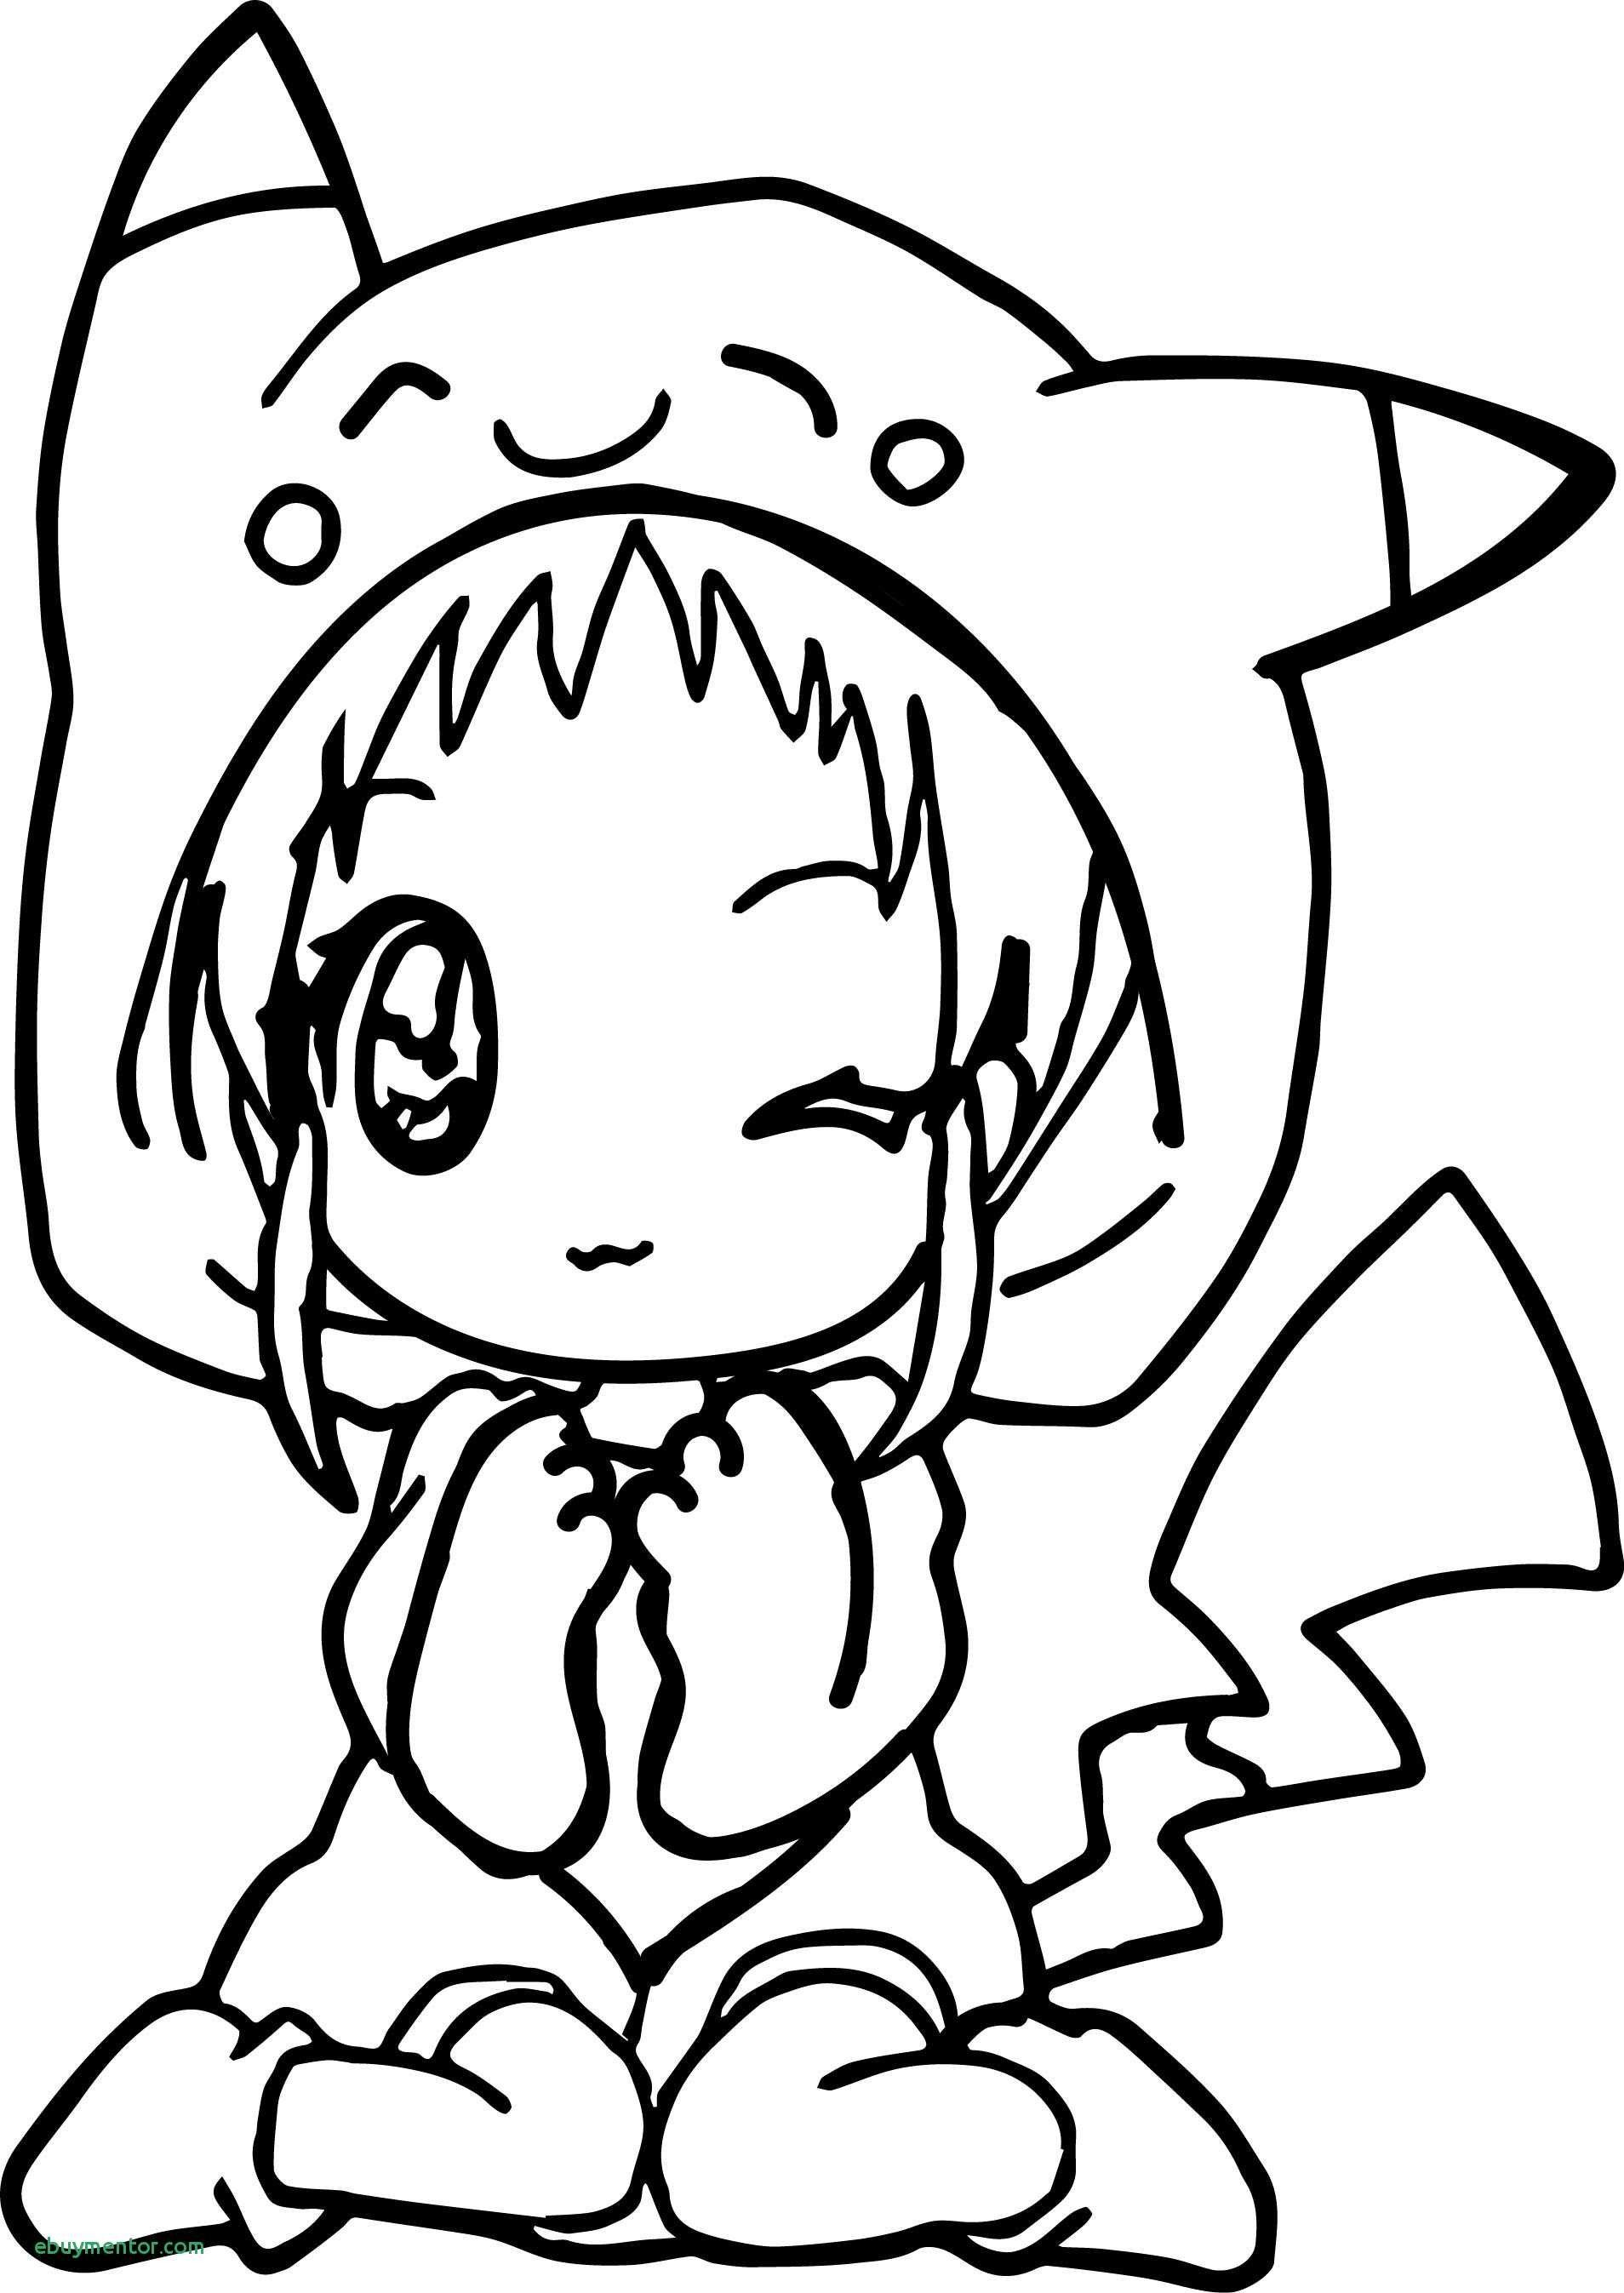 Chibi Pikachu Coloring Pages Through the thousands of